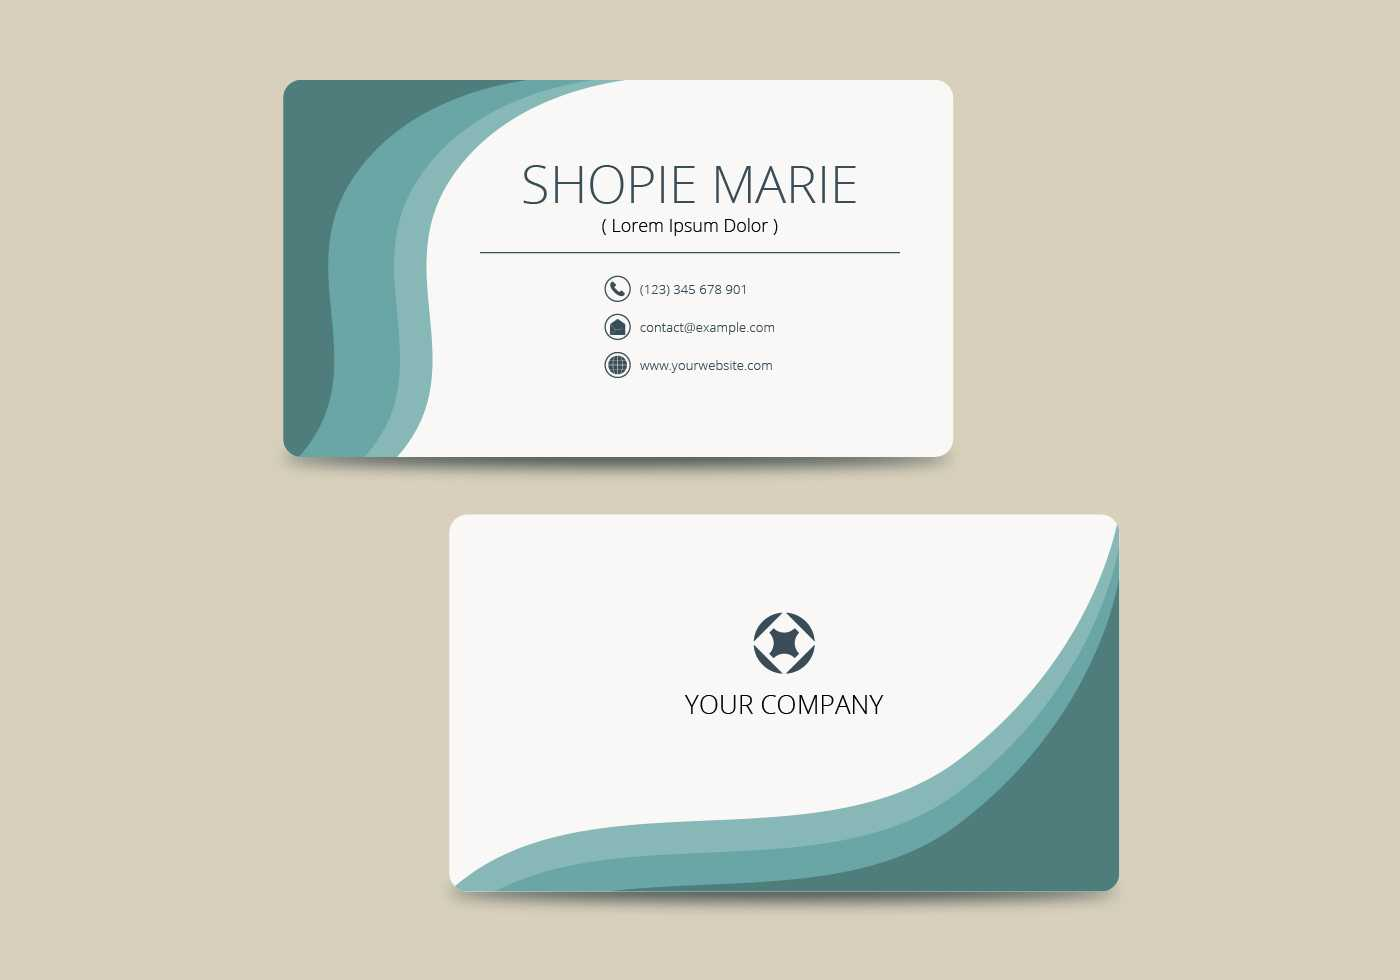 Teal Business Card Template Vector - Download Free Vectors Throughout Call Card Templates